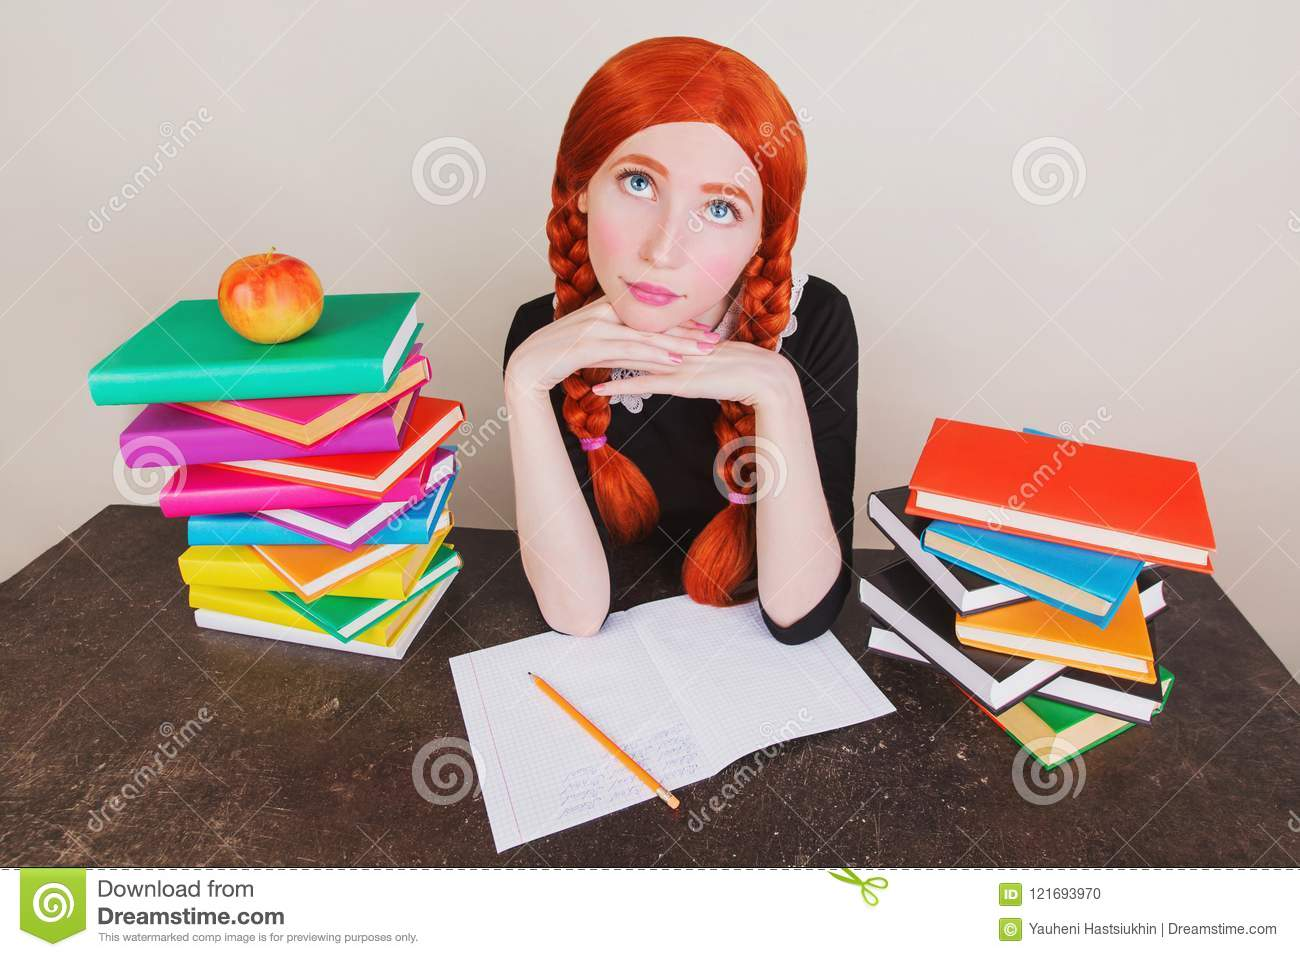 81a5f2e78381 Redhead schoolgirl in school uniform sits at desk on gray background.  Colored text books on table. The apple lies on book.